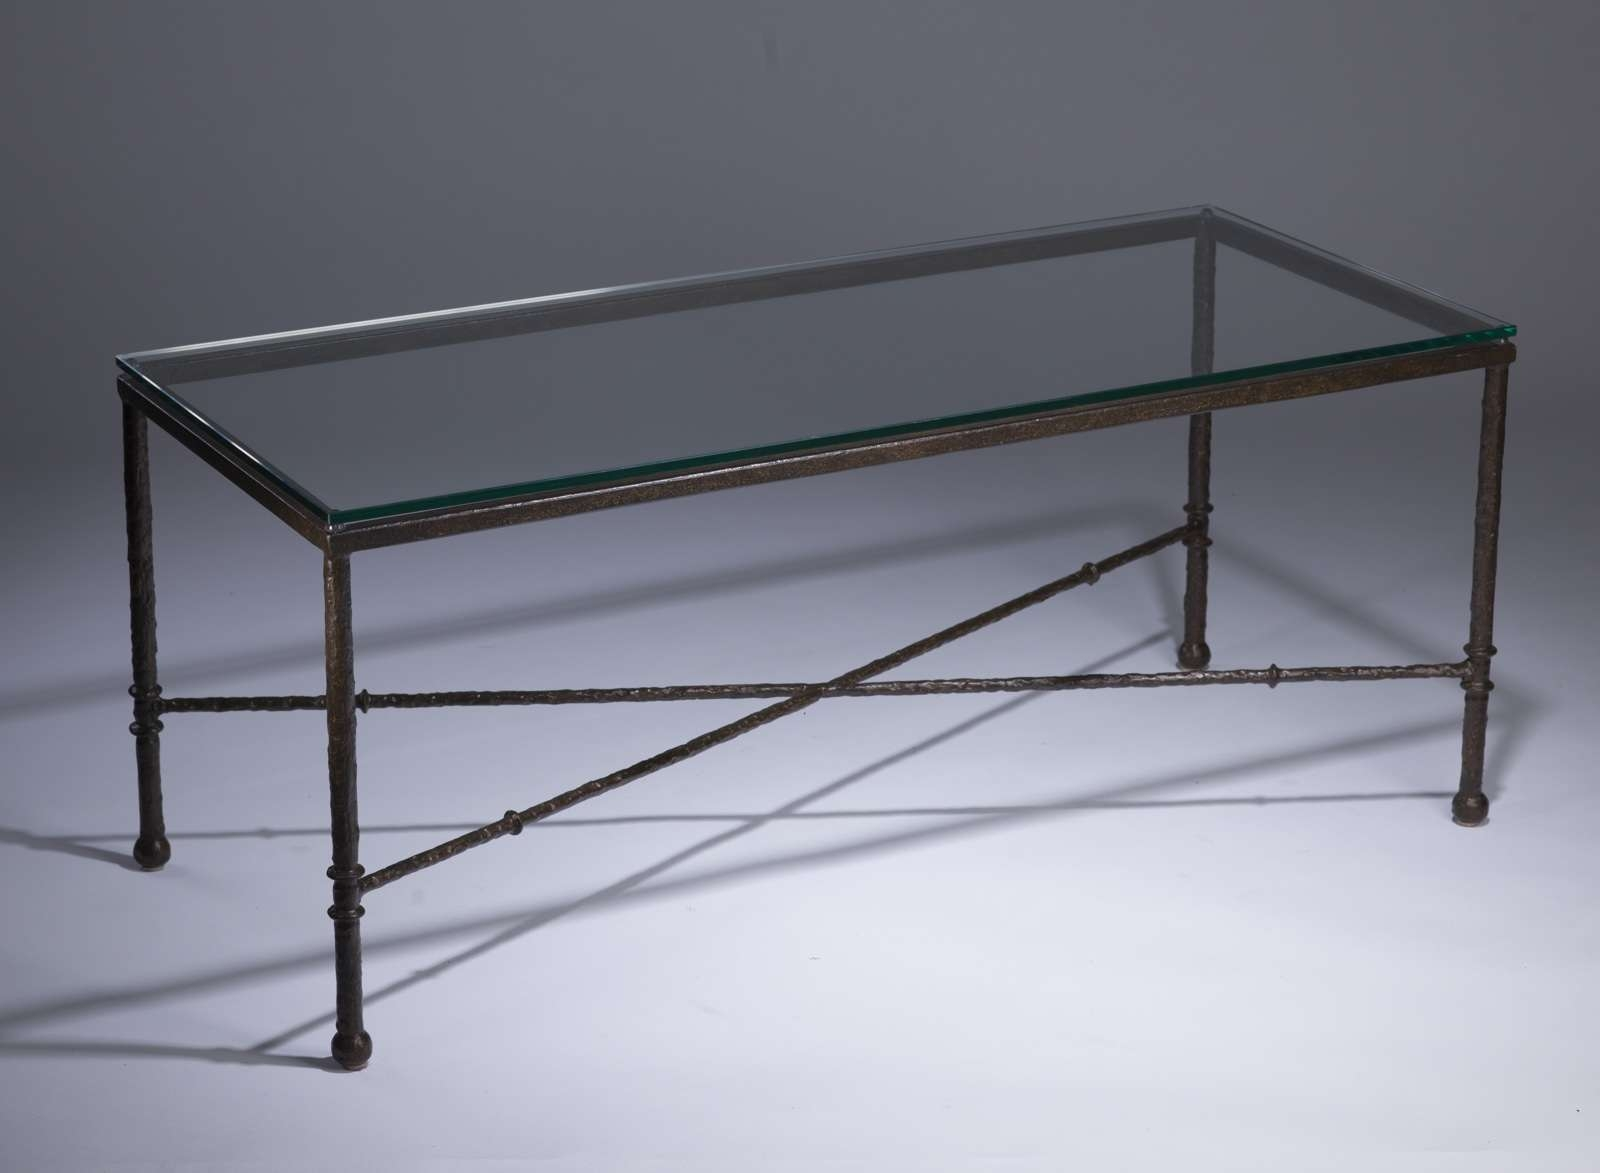 Wrought Iron And Glass Coffee Table Throughout Popular Iron Glass Coffee Table (View 6 of 20)